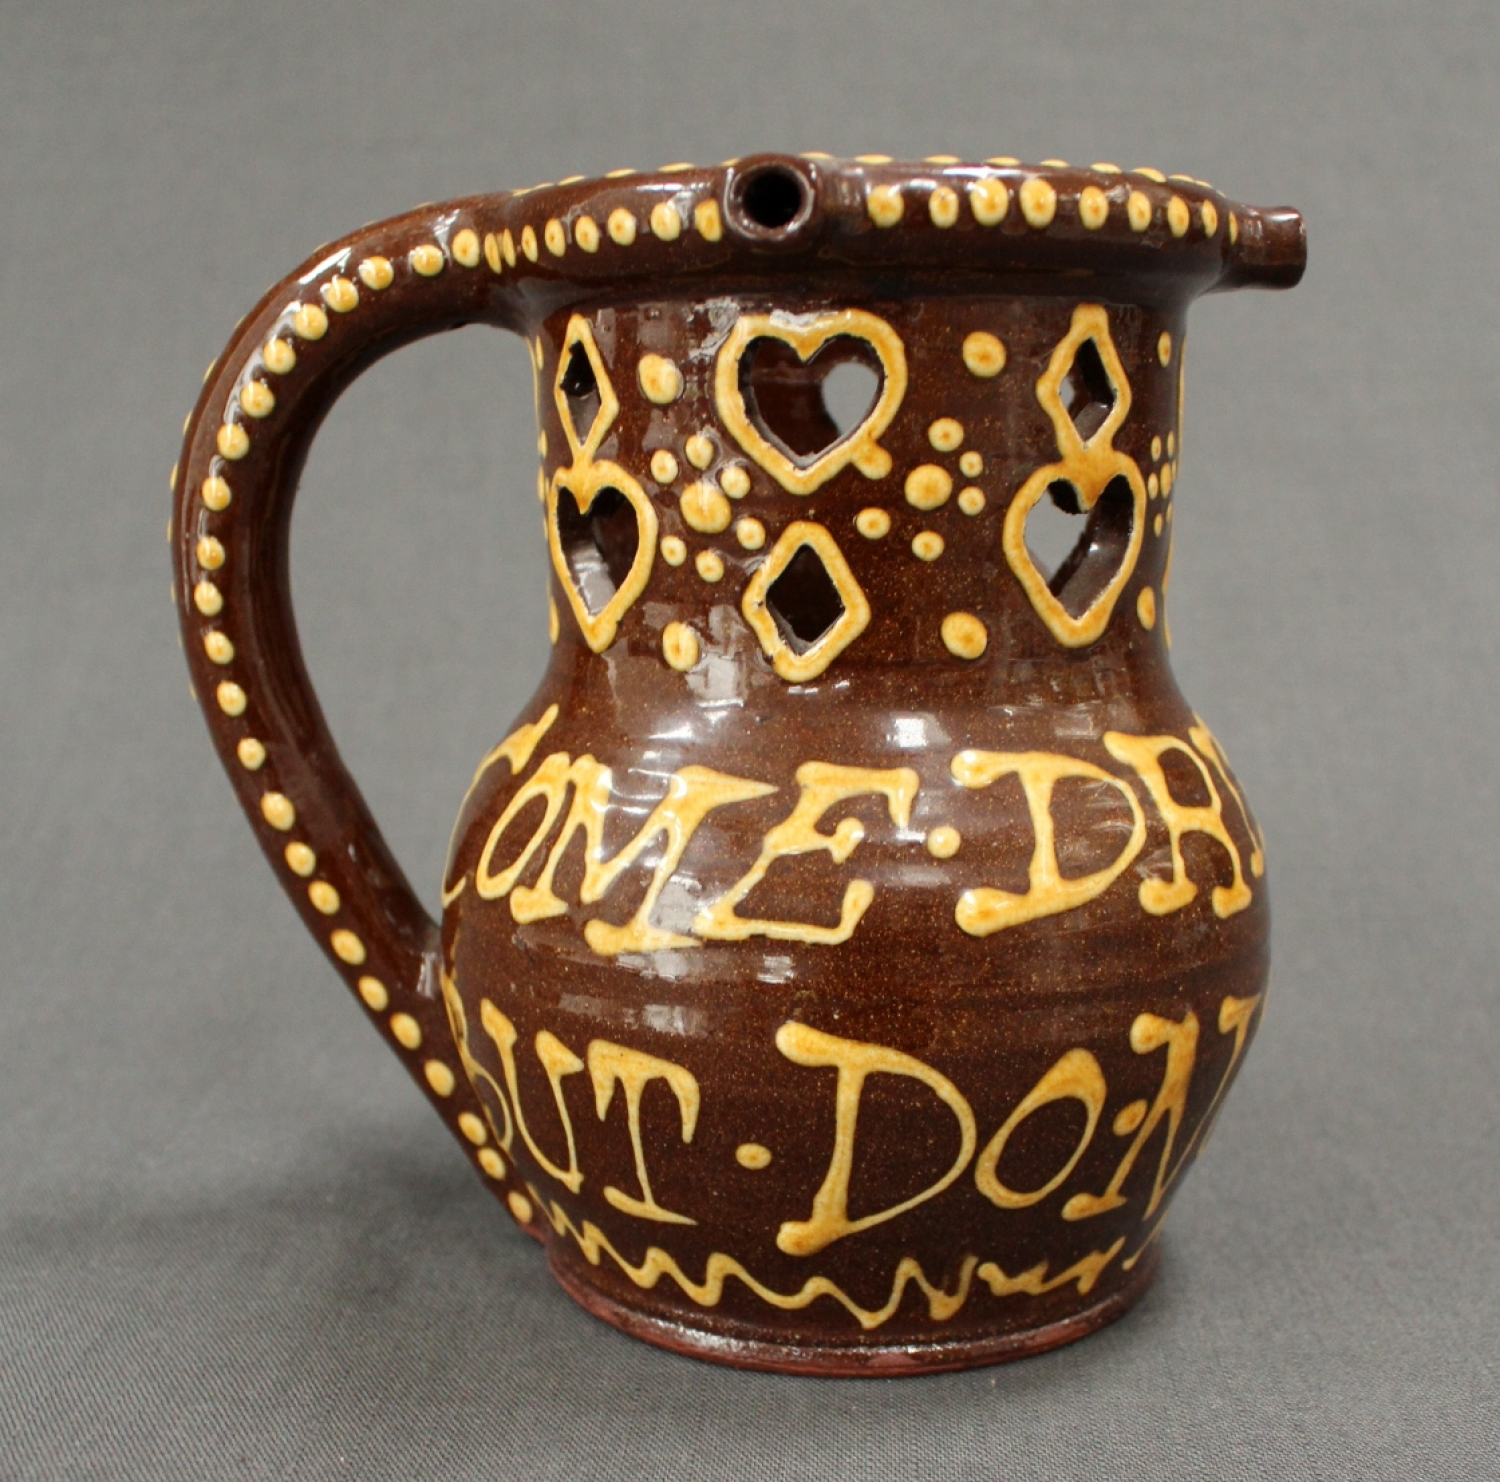 A glazed terracotta puzzle jug